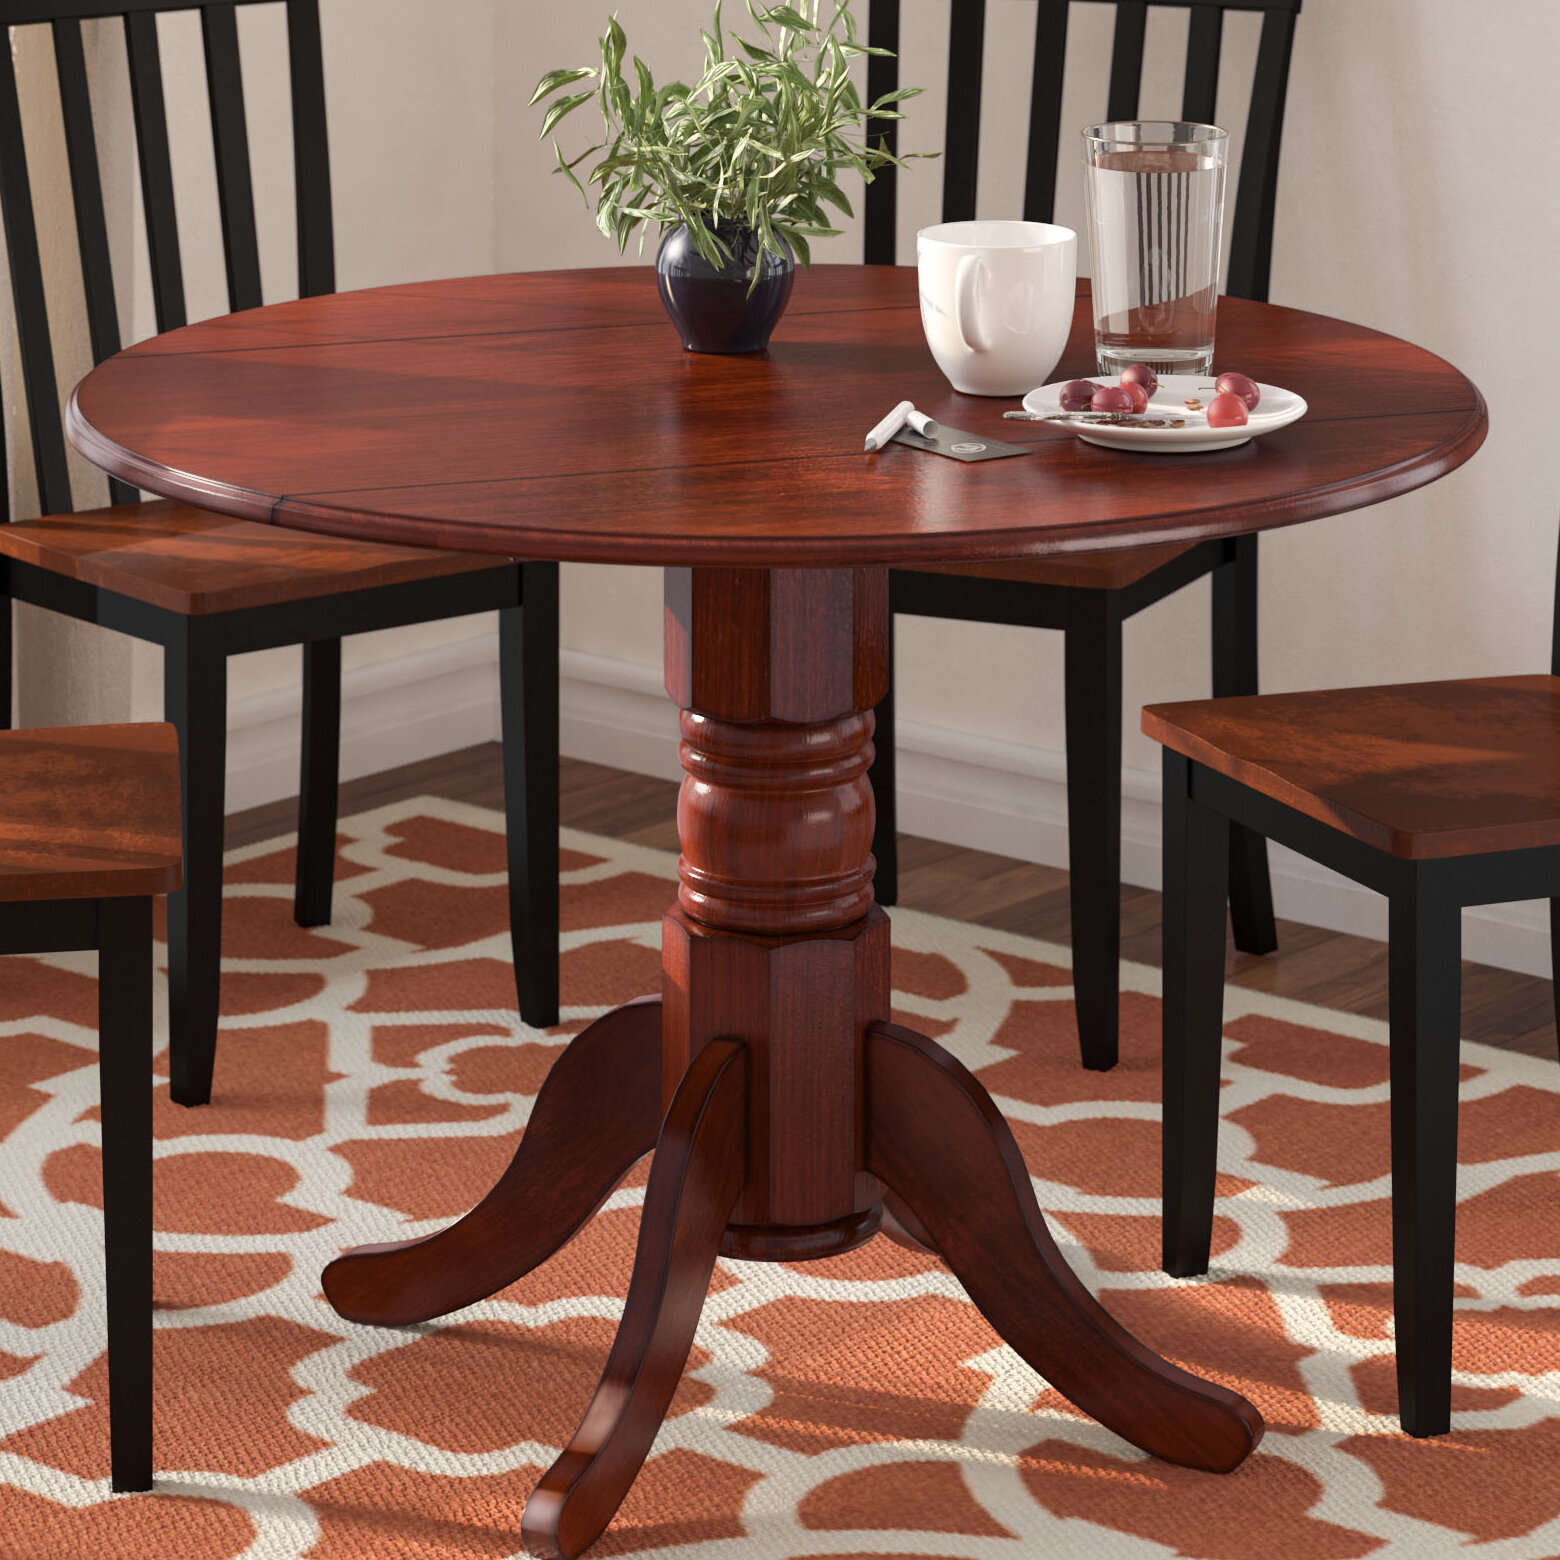 Marvelous Alcott Hill Chesterton Drop Leaf Dining Table U0026 Reviews | Wayfair